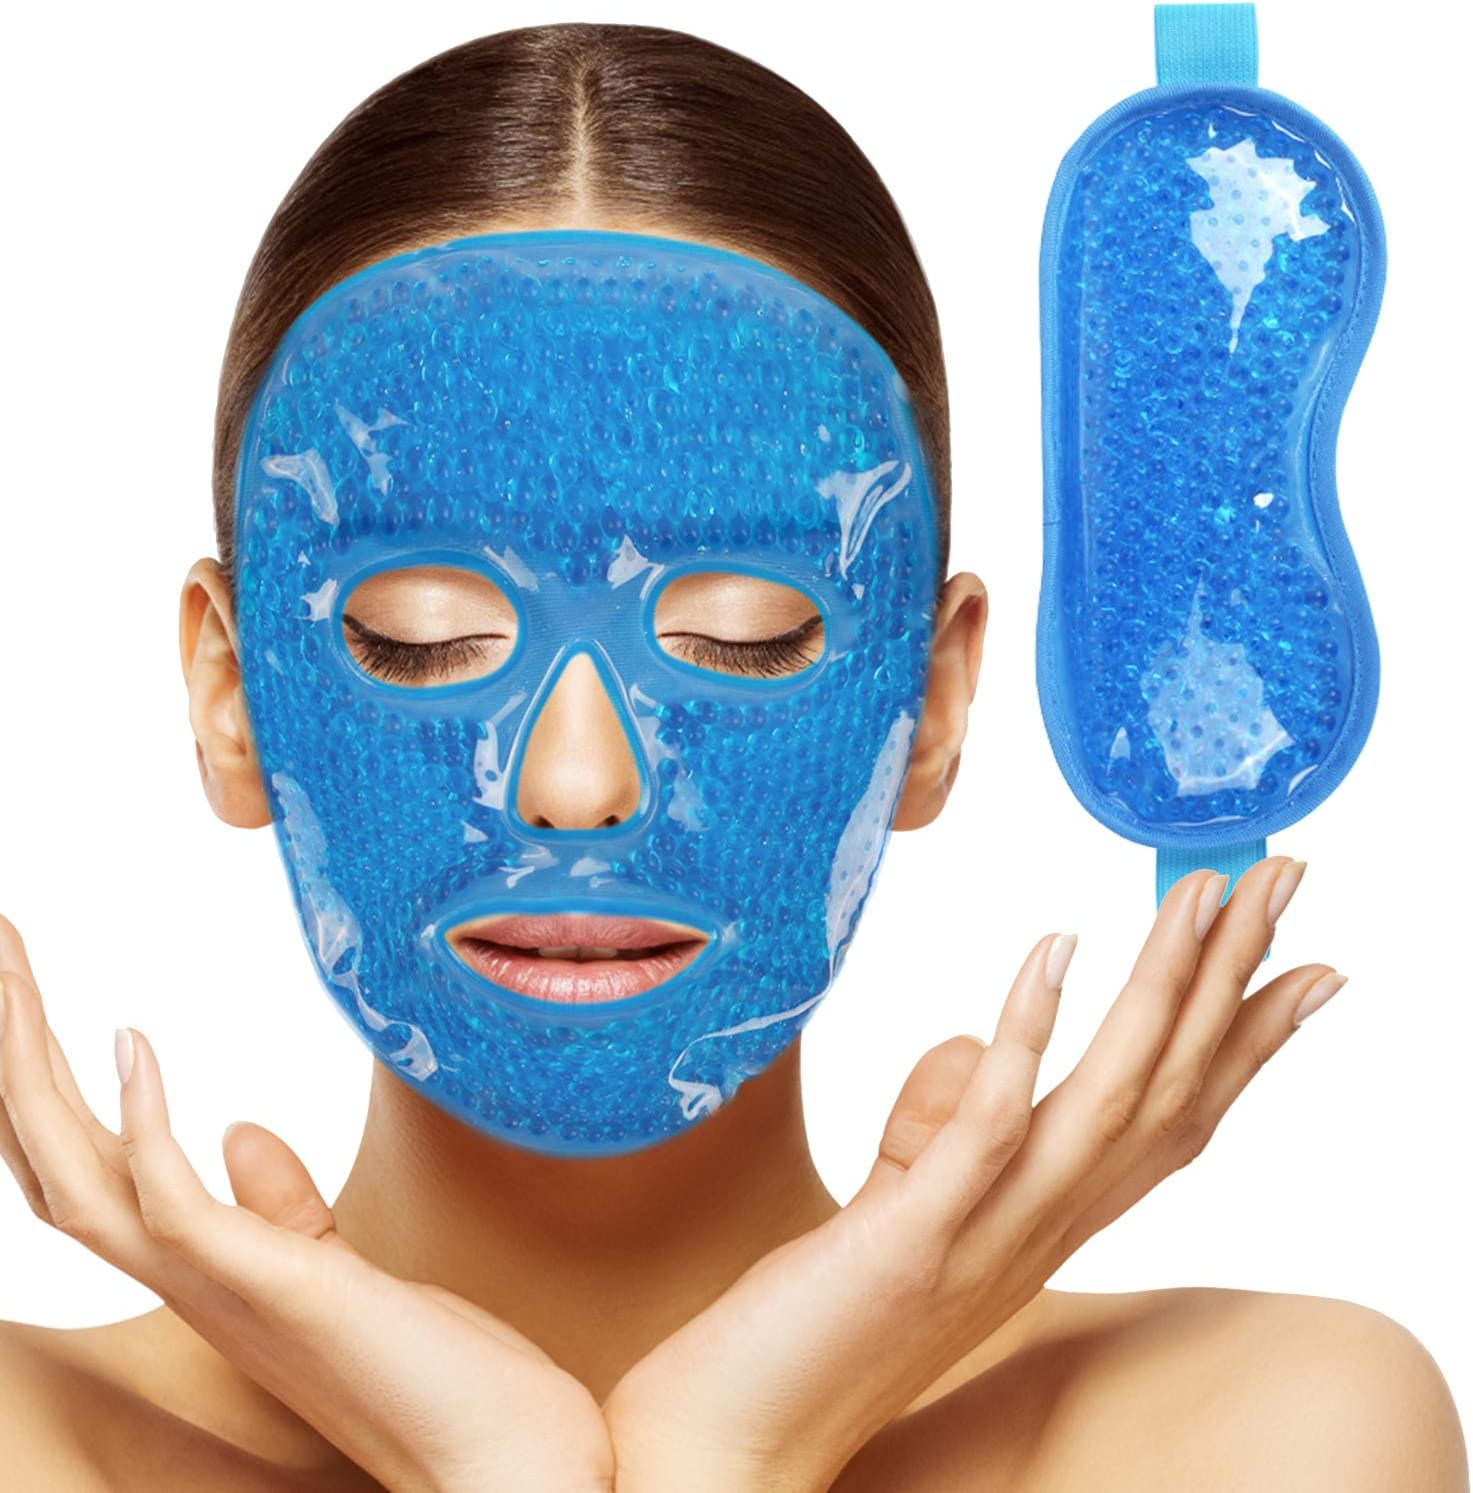 2pcs Gel Beads Face & Eye Masks Kit Hot/Cold Mask Cooling Ice/Heat Facial Eye Pack Therapy for Puffy Eyes, Migraines, Headaches, Pain Relief with Soft Back Reusable